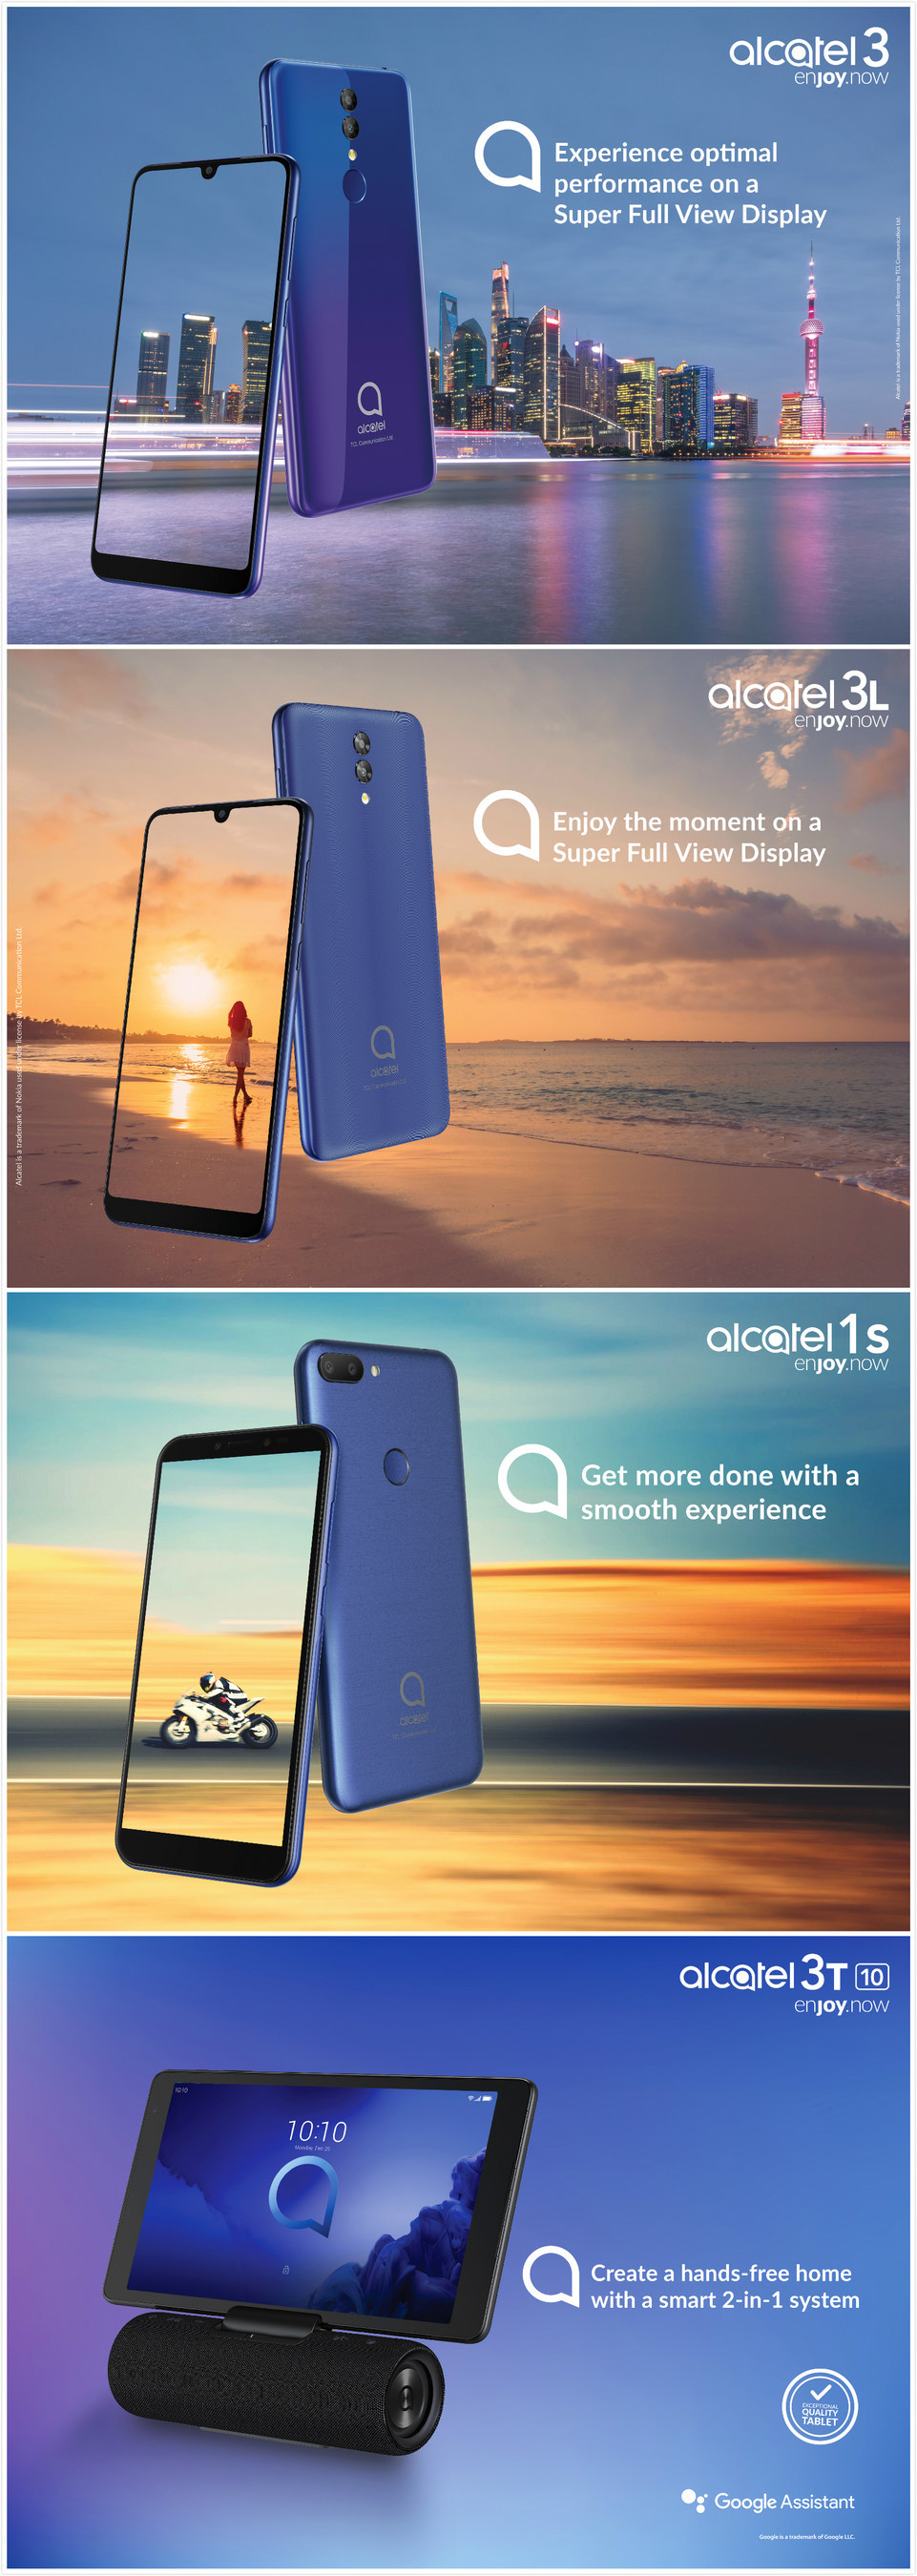 TCL Communication unveils its latest Alcatel 3 and 1 Series